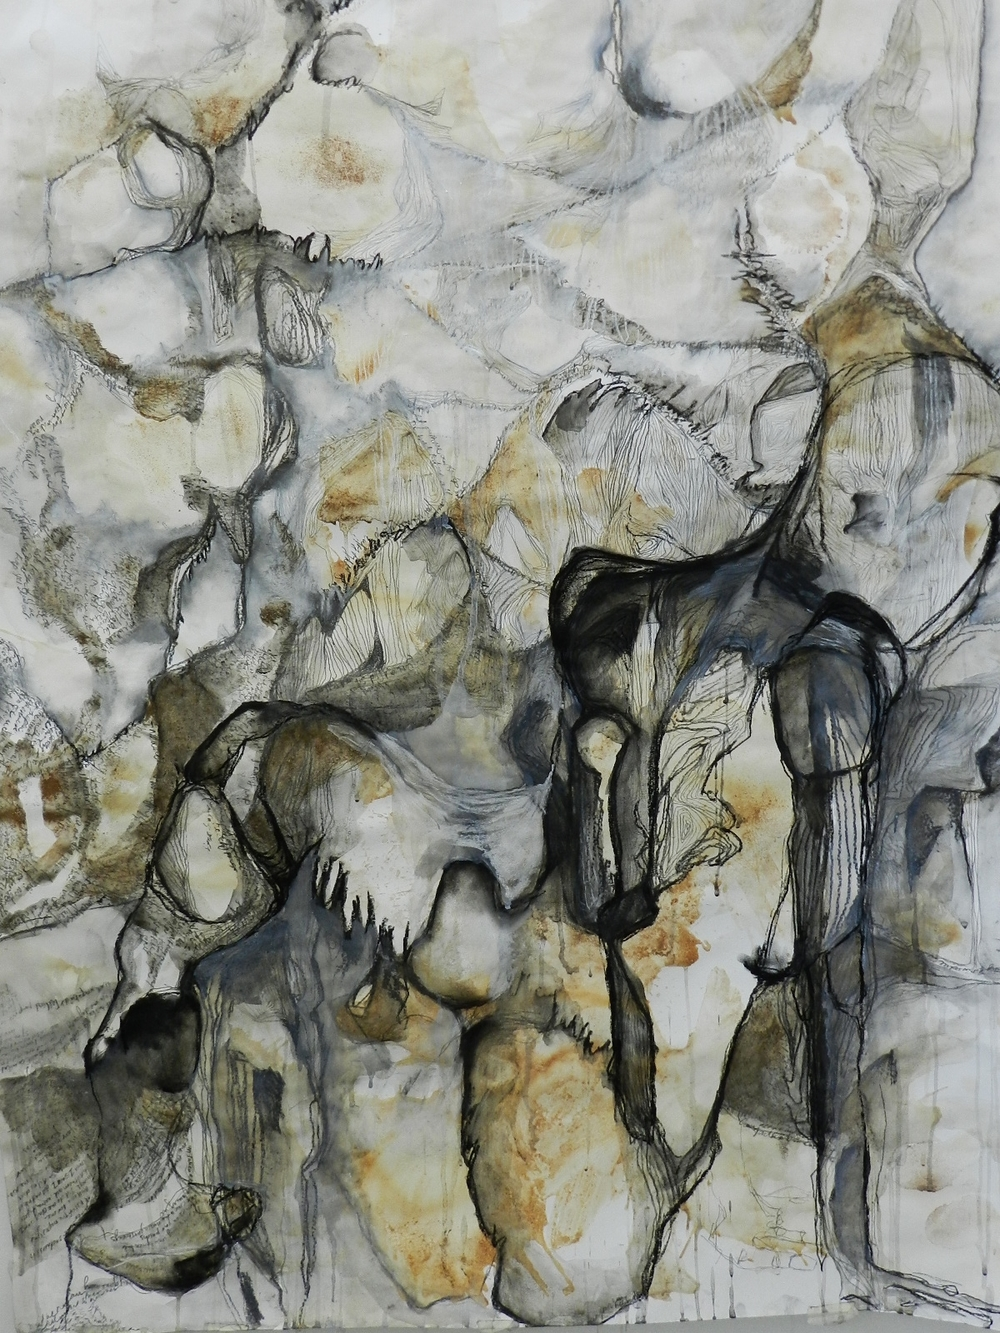 Charcoal, pen and ink, dirt on paper. 2012